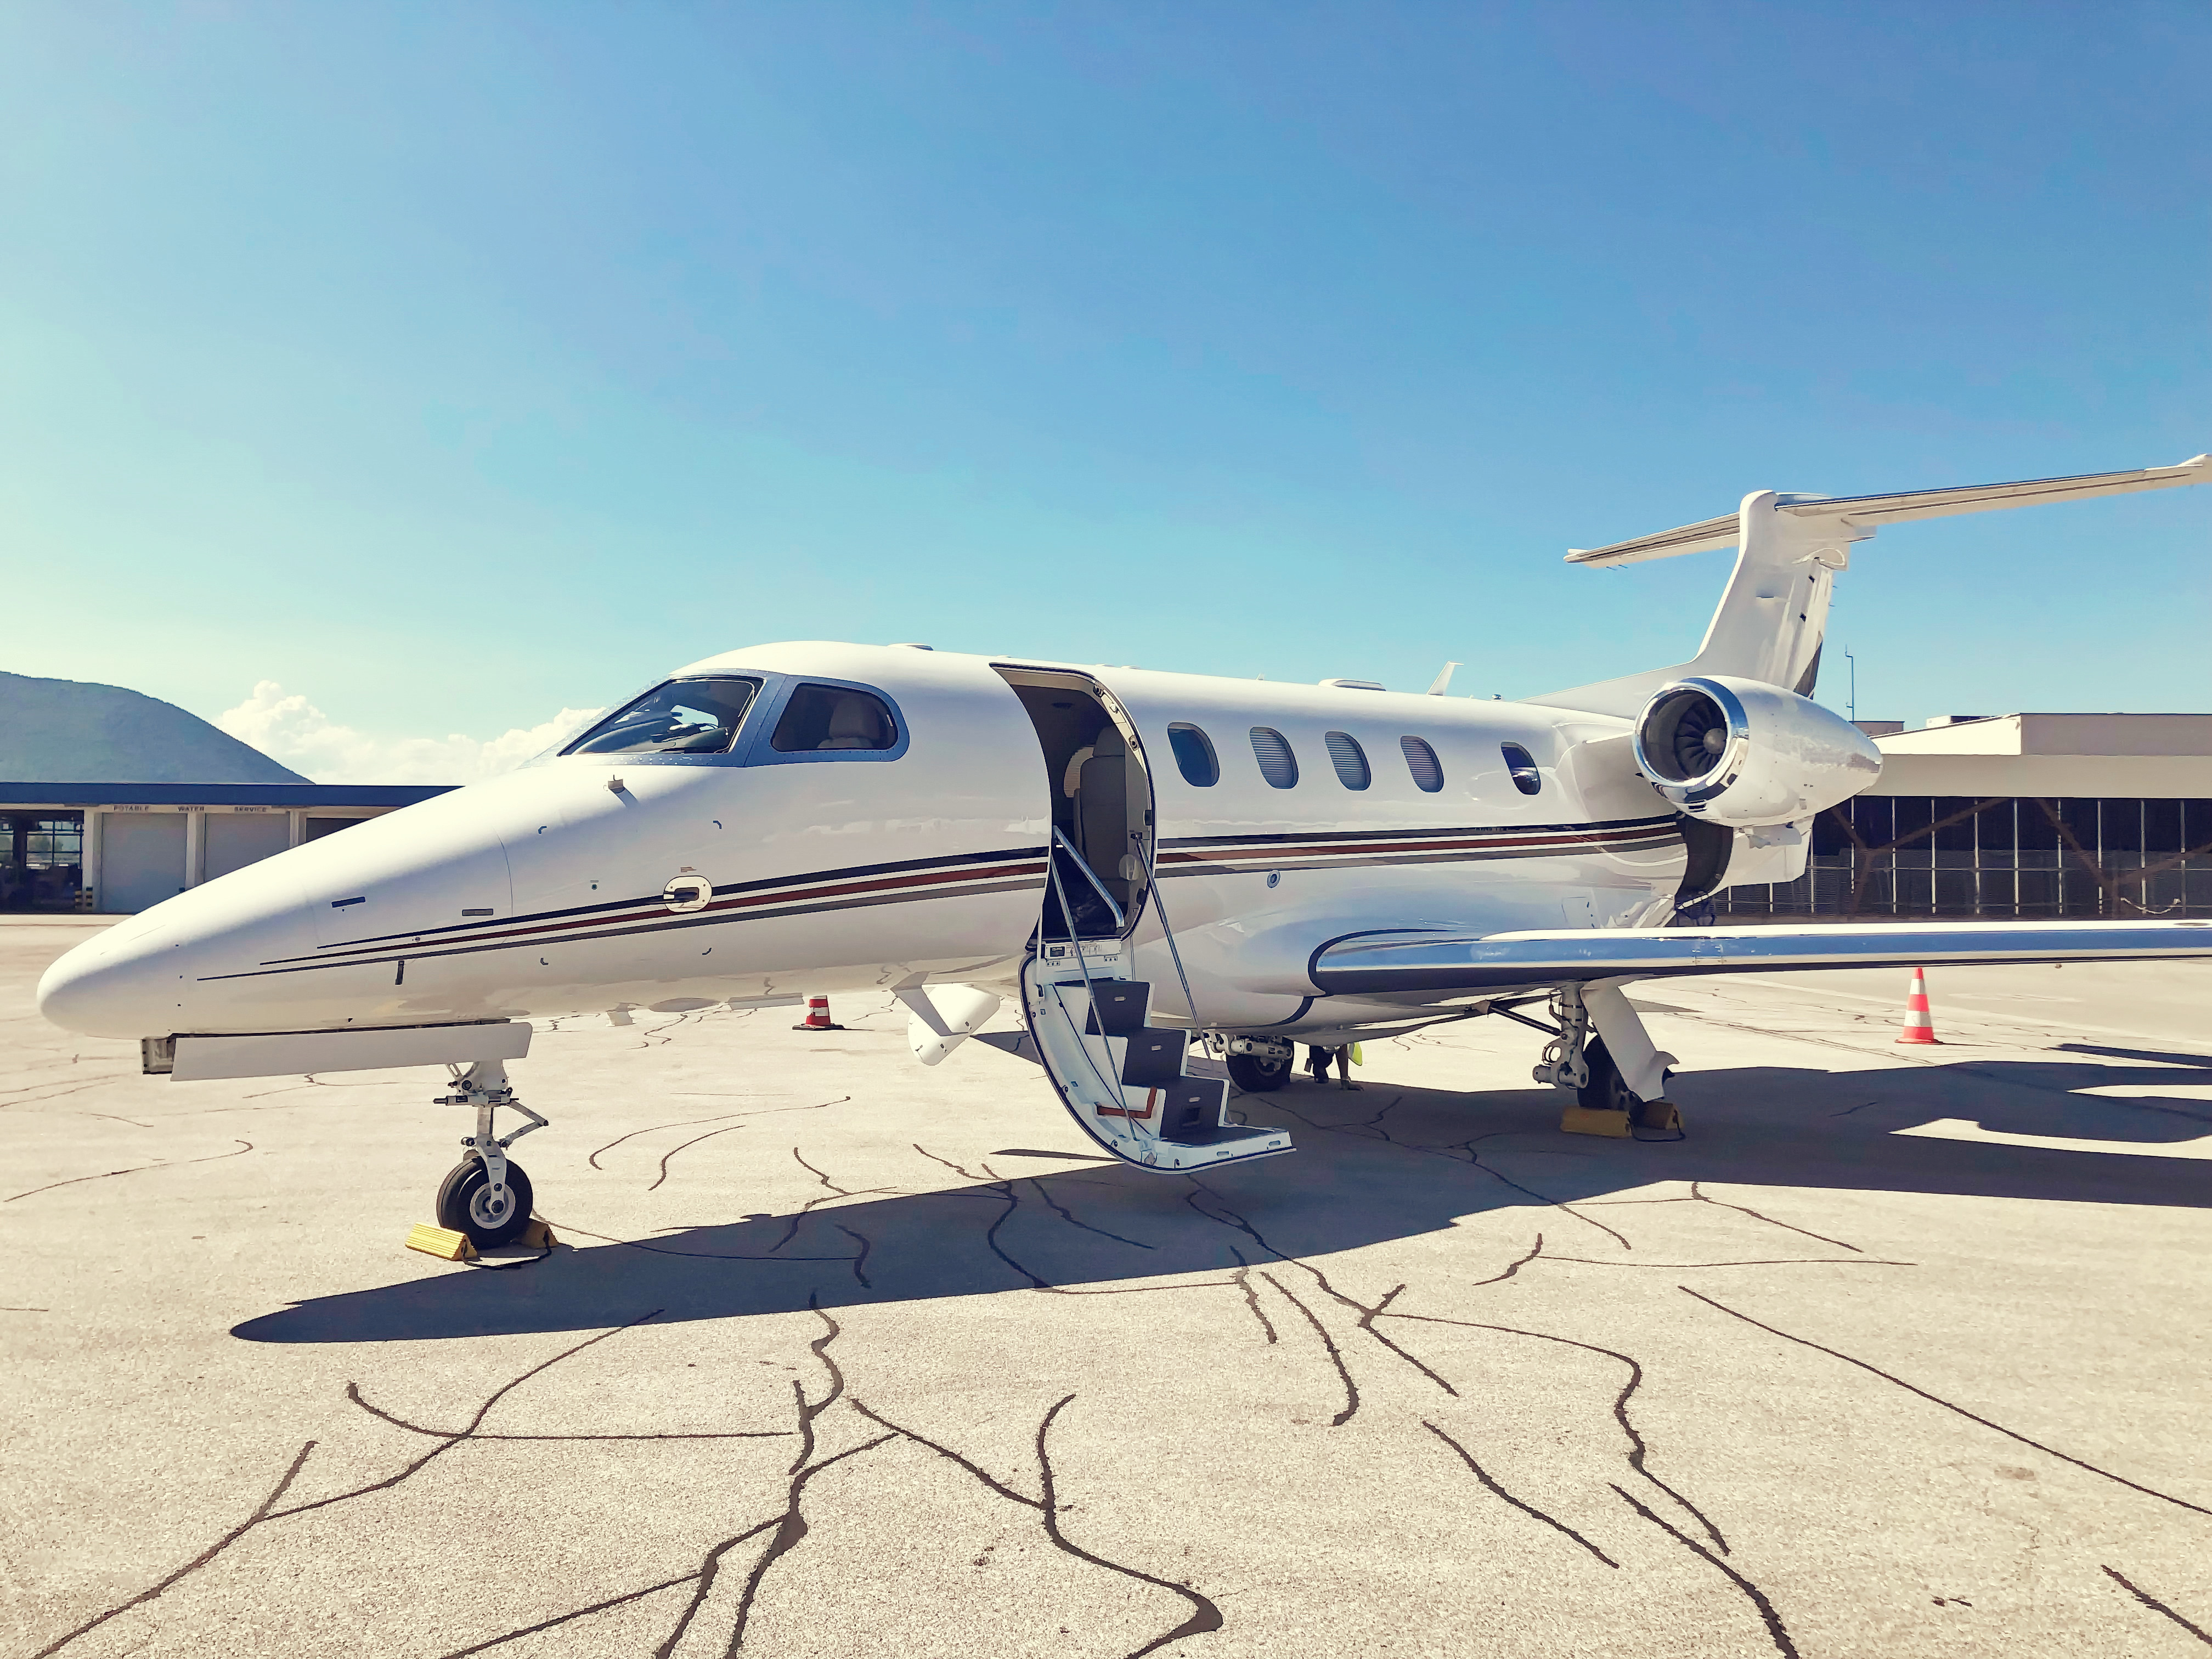 phenom 300 on tarmac